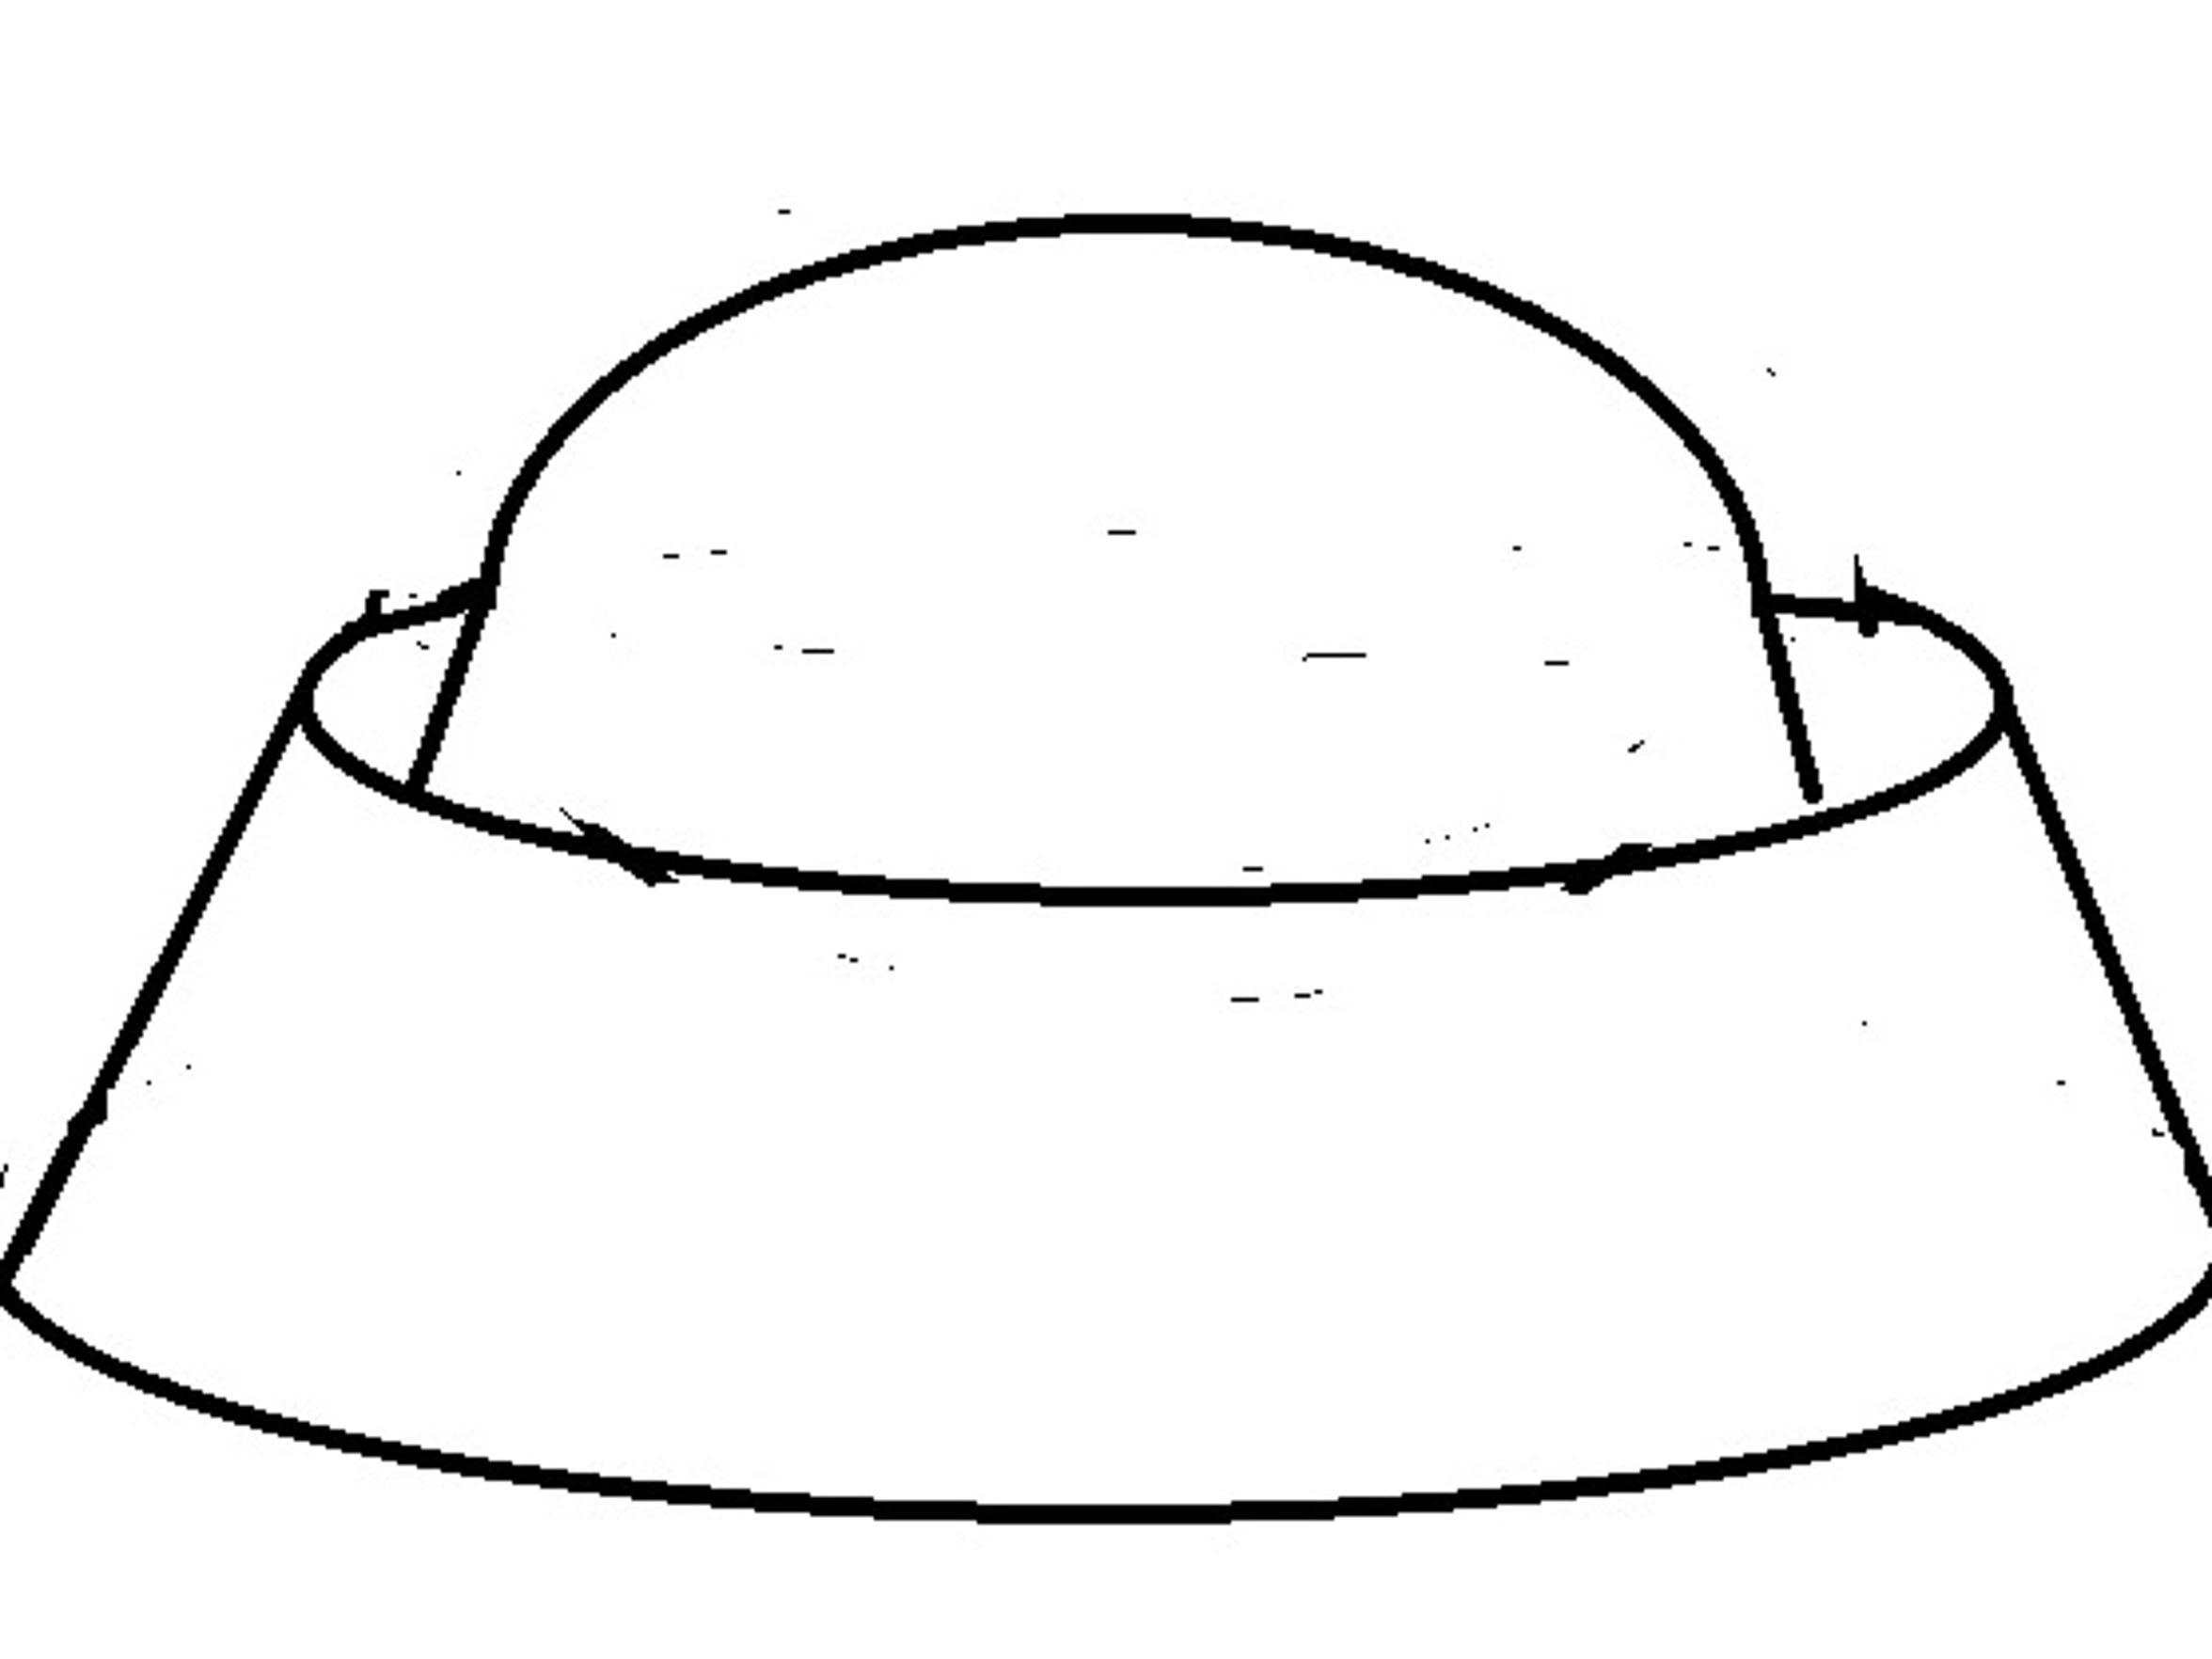 A sketch of a UFO reported over Tallahassee on July